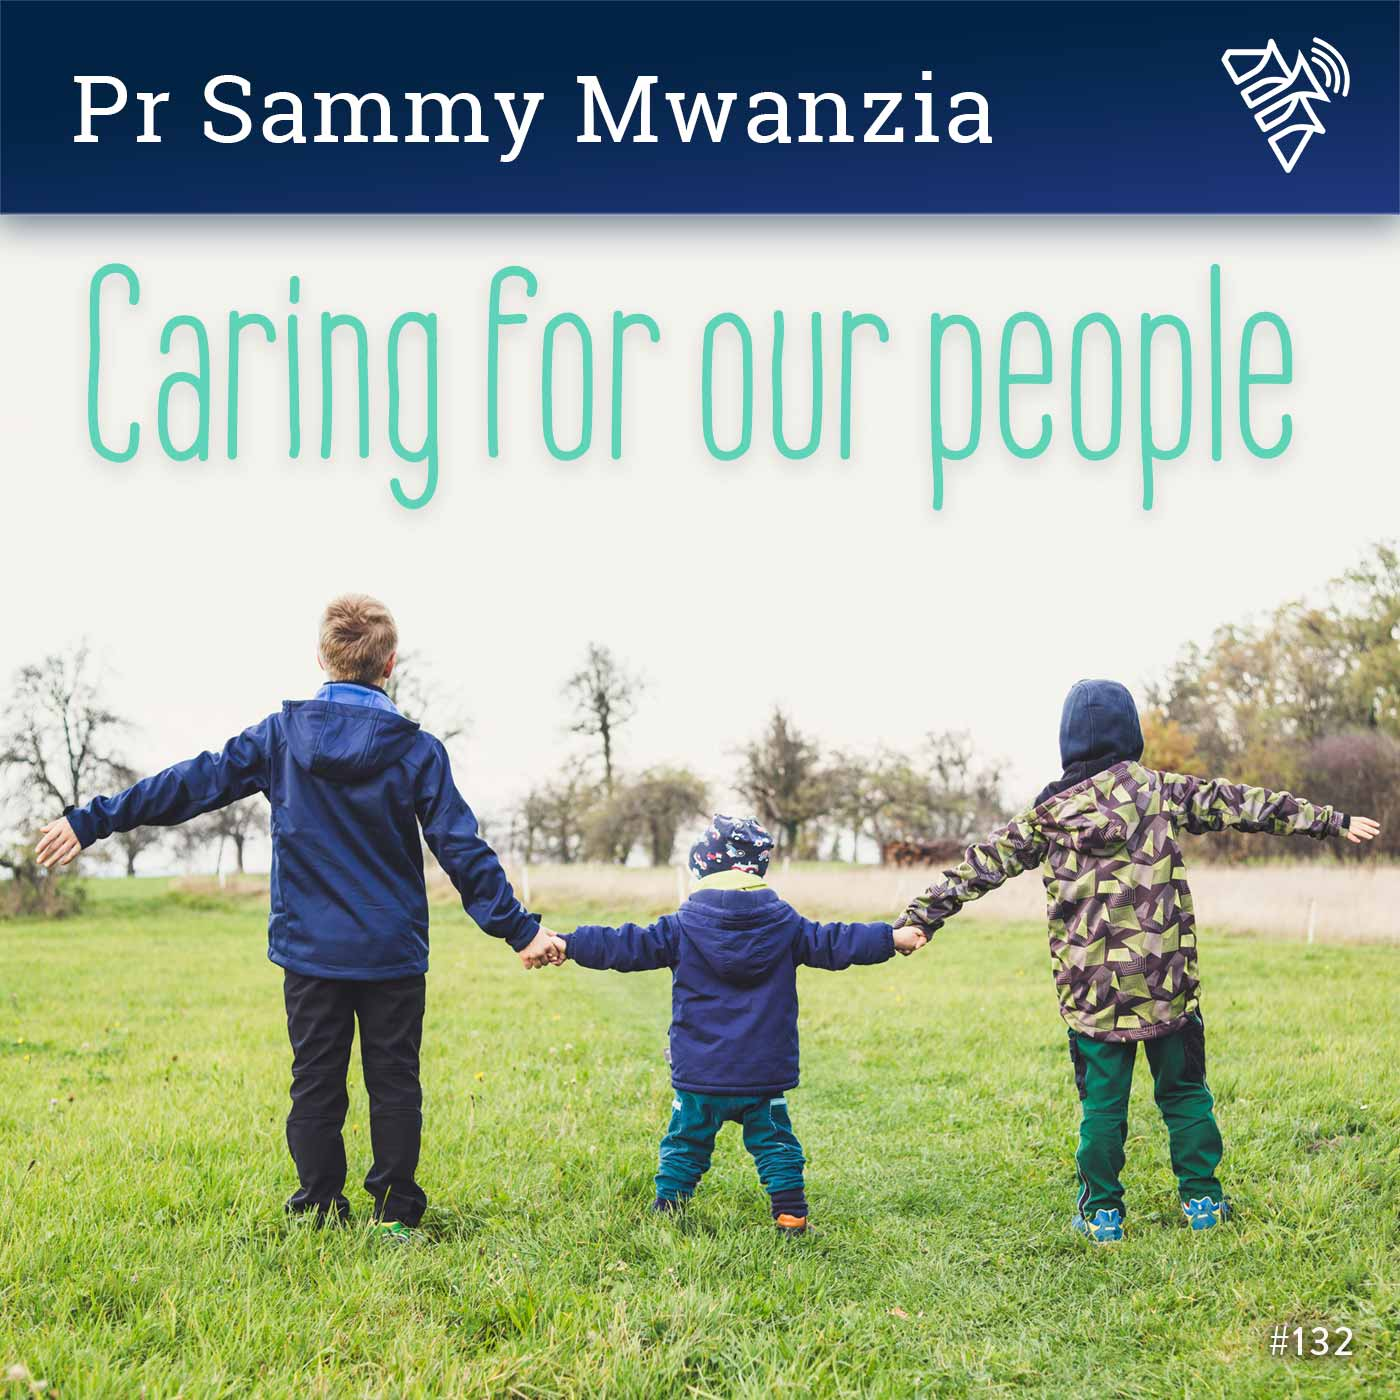 Caring for our people